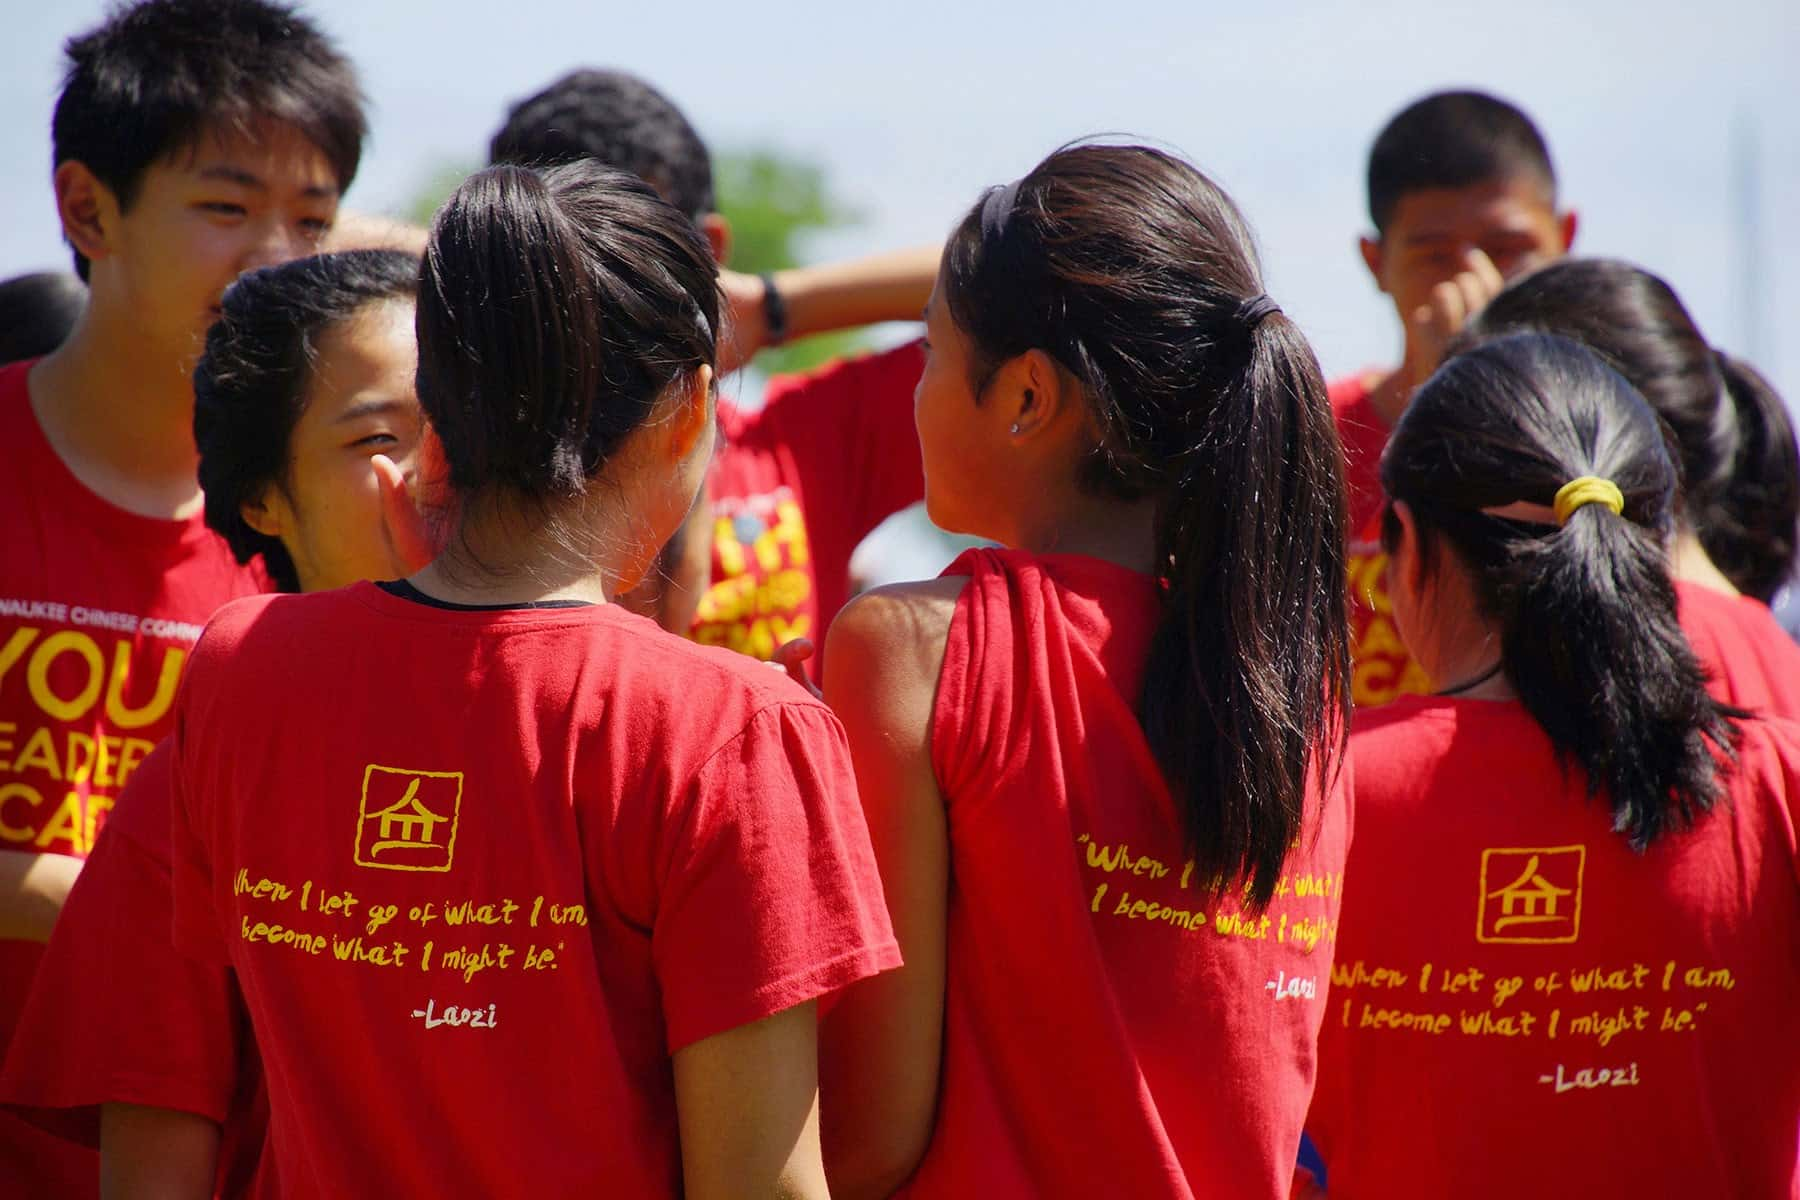 080116_dragonboat_album_03_02